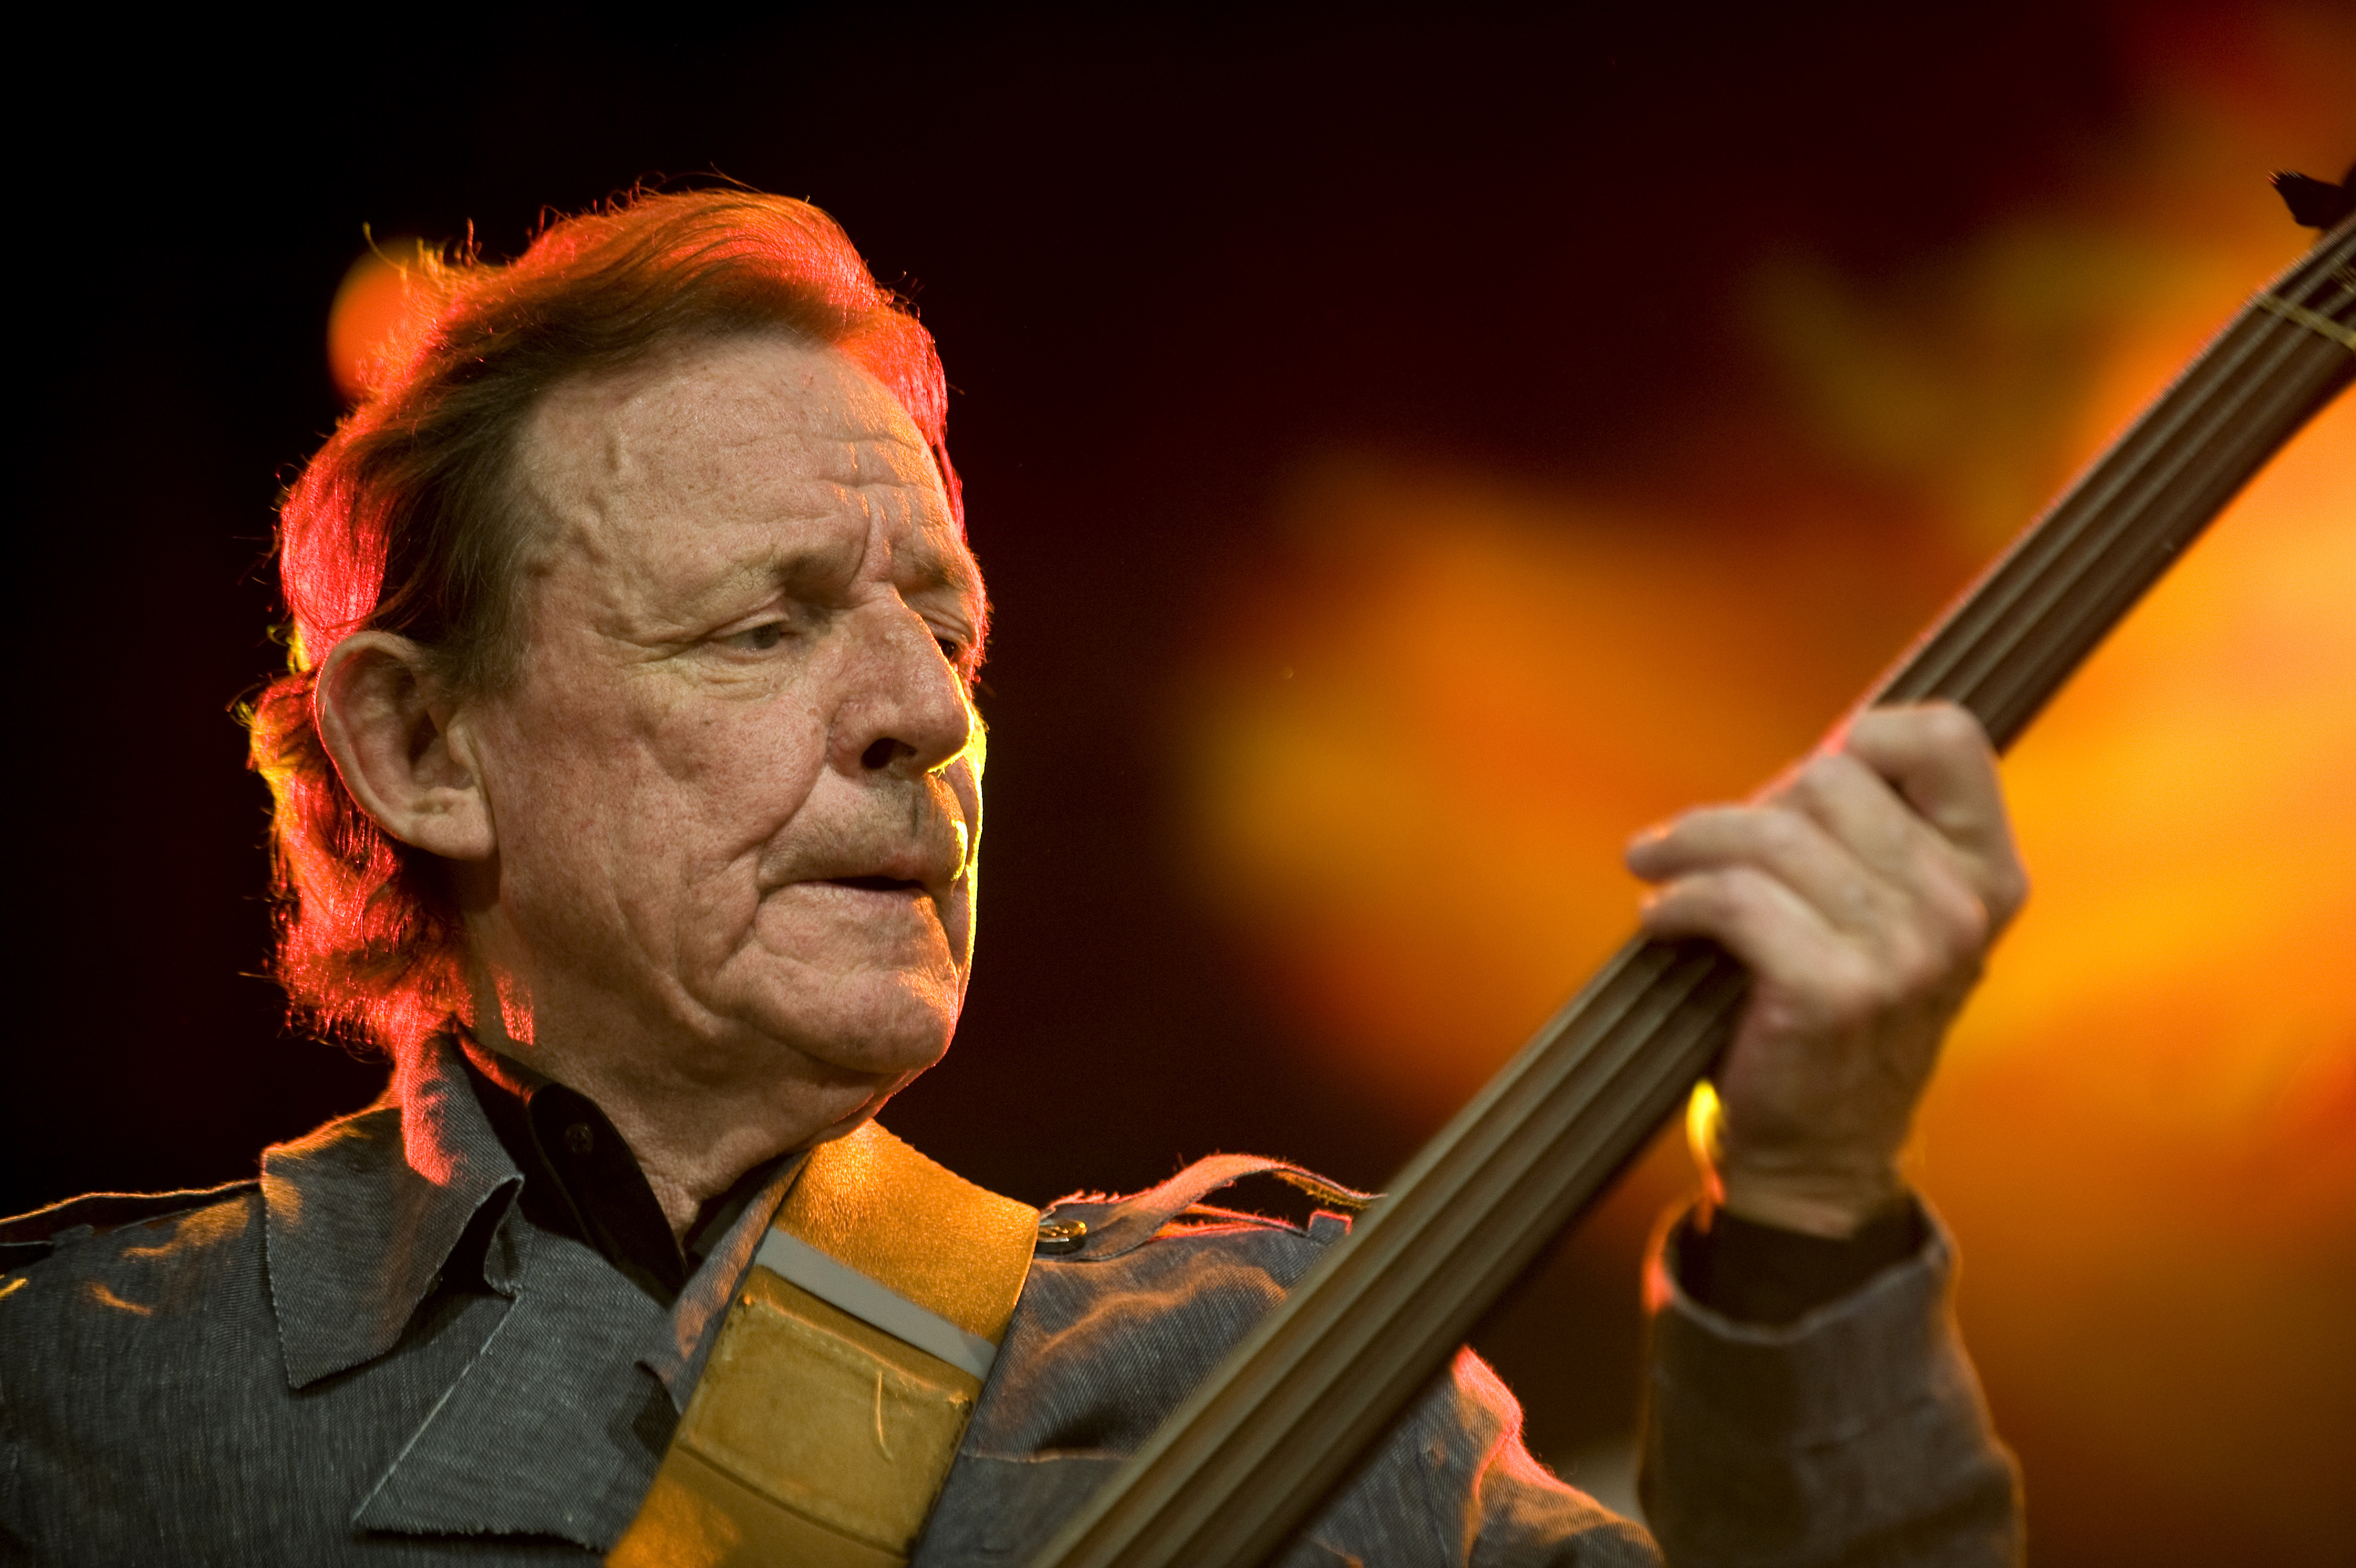 Jack Bruce performs on stage during North Sea Jazz Festival at Ahoy on July 6, 2012 in Rotterdam, Netherlands.